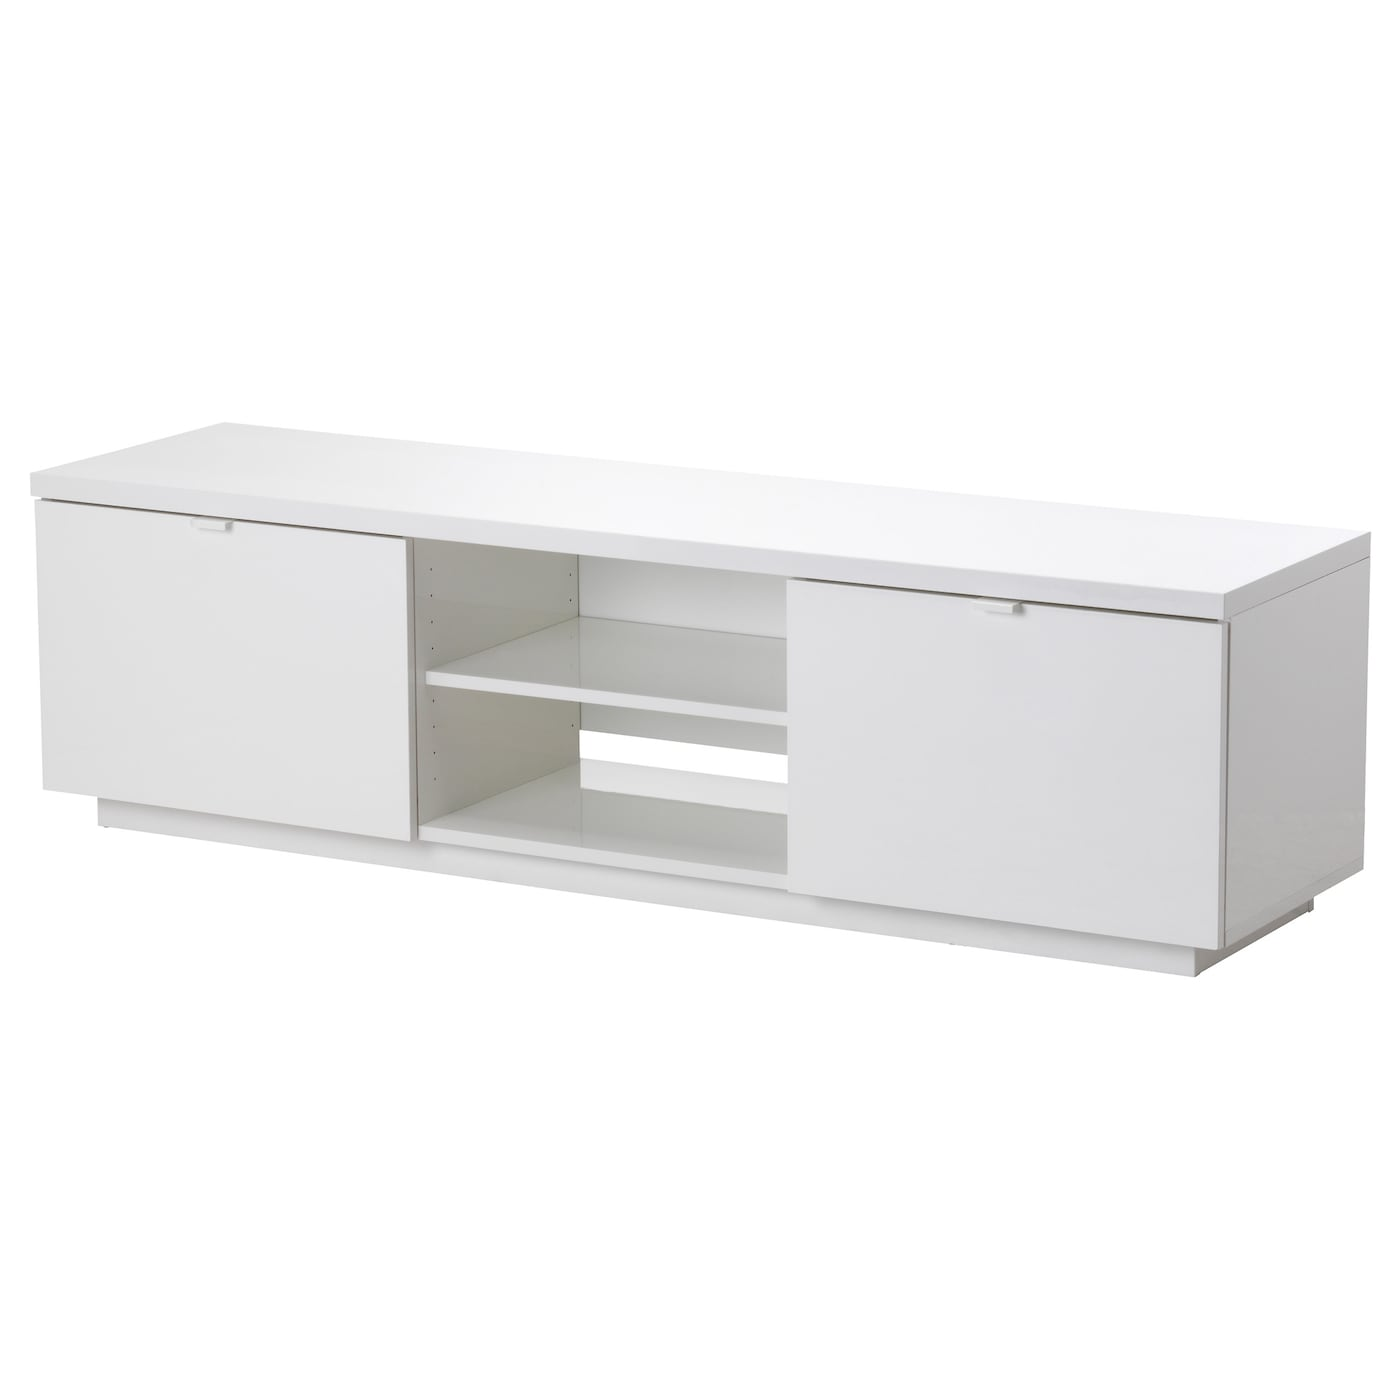 Ikea Meuble Tv Lack - Tv Tables Tv Benches Ikea[mjhdah]https://www.ikea.com/PIAimages/59638_PE165526_S5.JPG